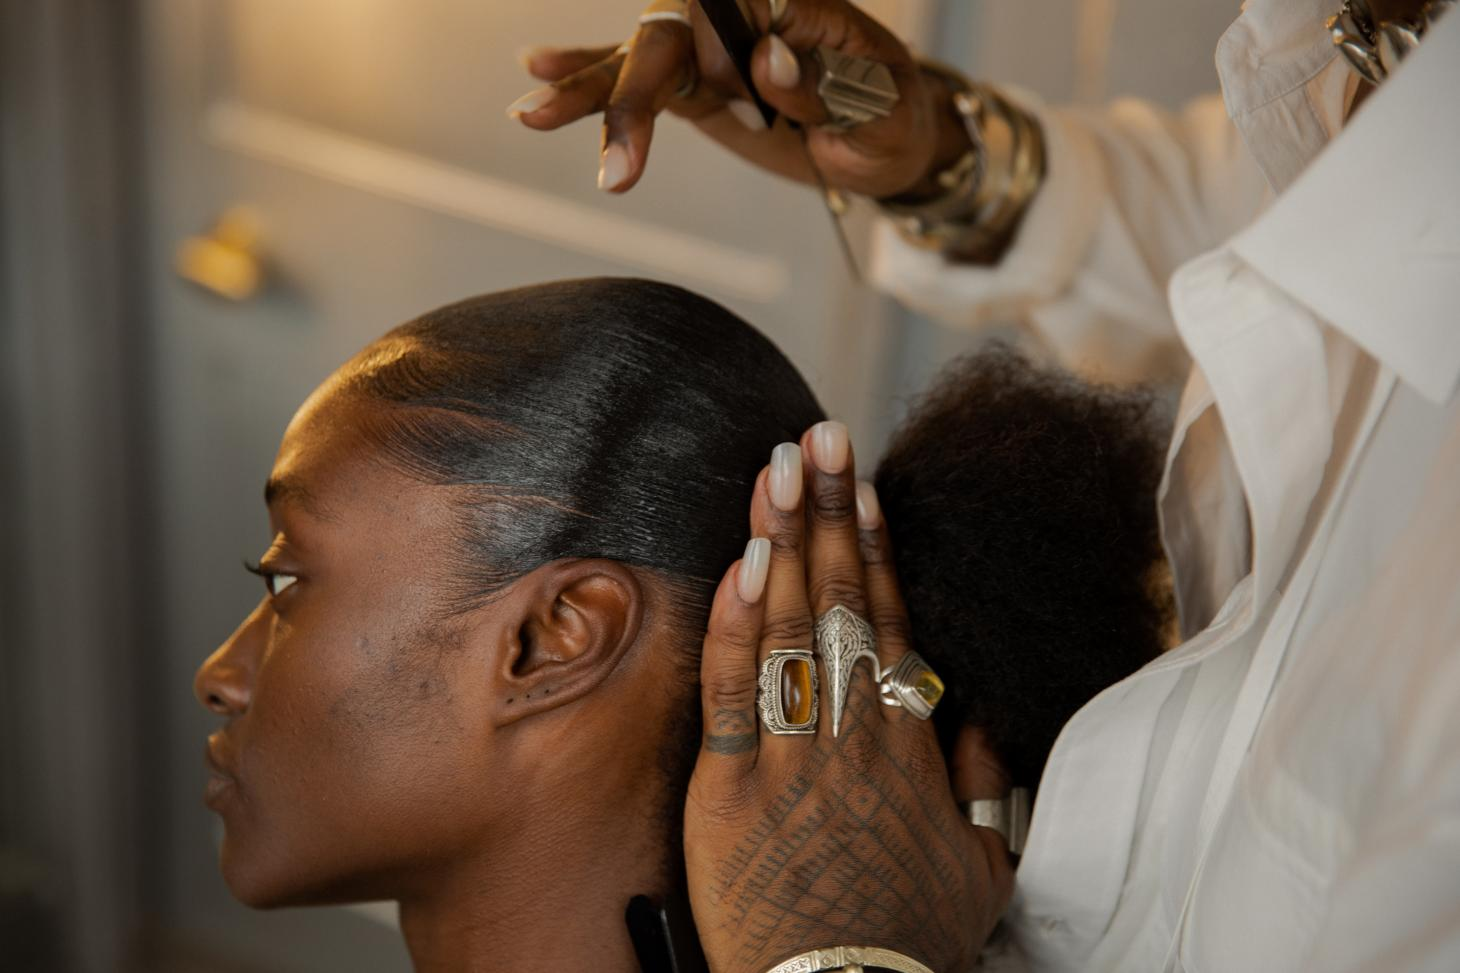 Hairstylist Issac Polen working on a clients hair during his Browns London residency